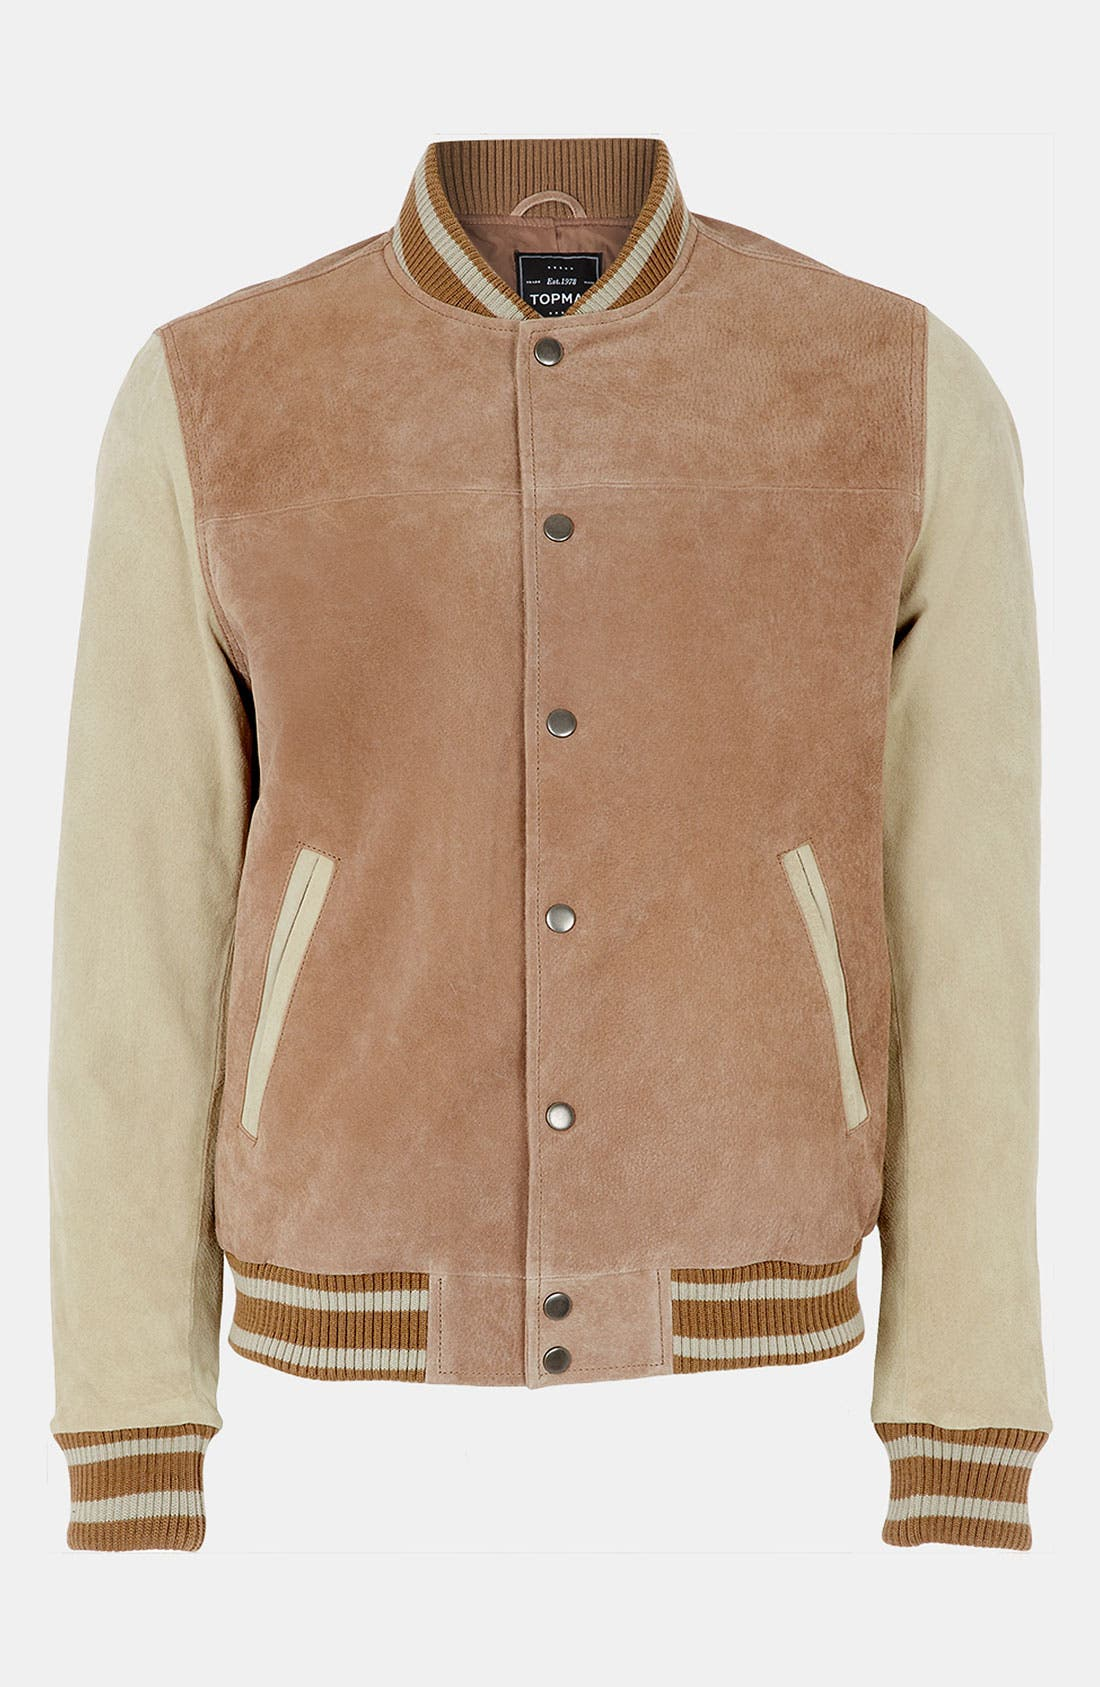 Alternate Image 1 Selected - Topman 'Yale' Varsity Jacket